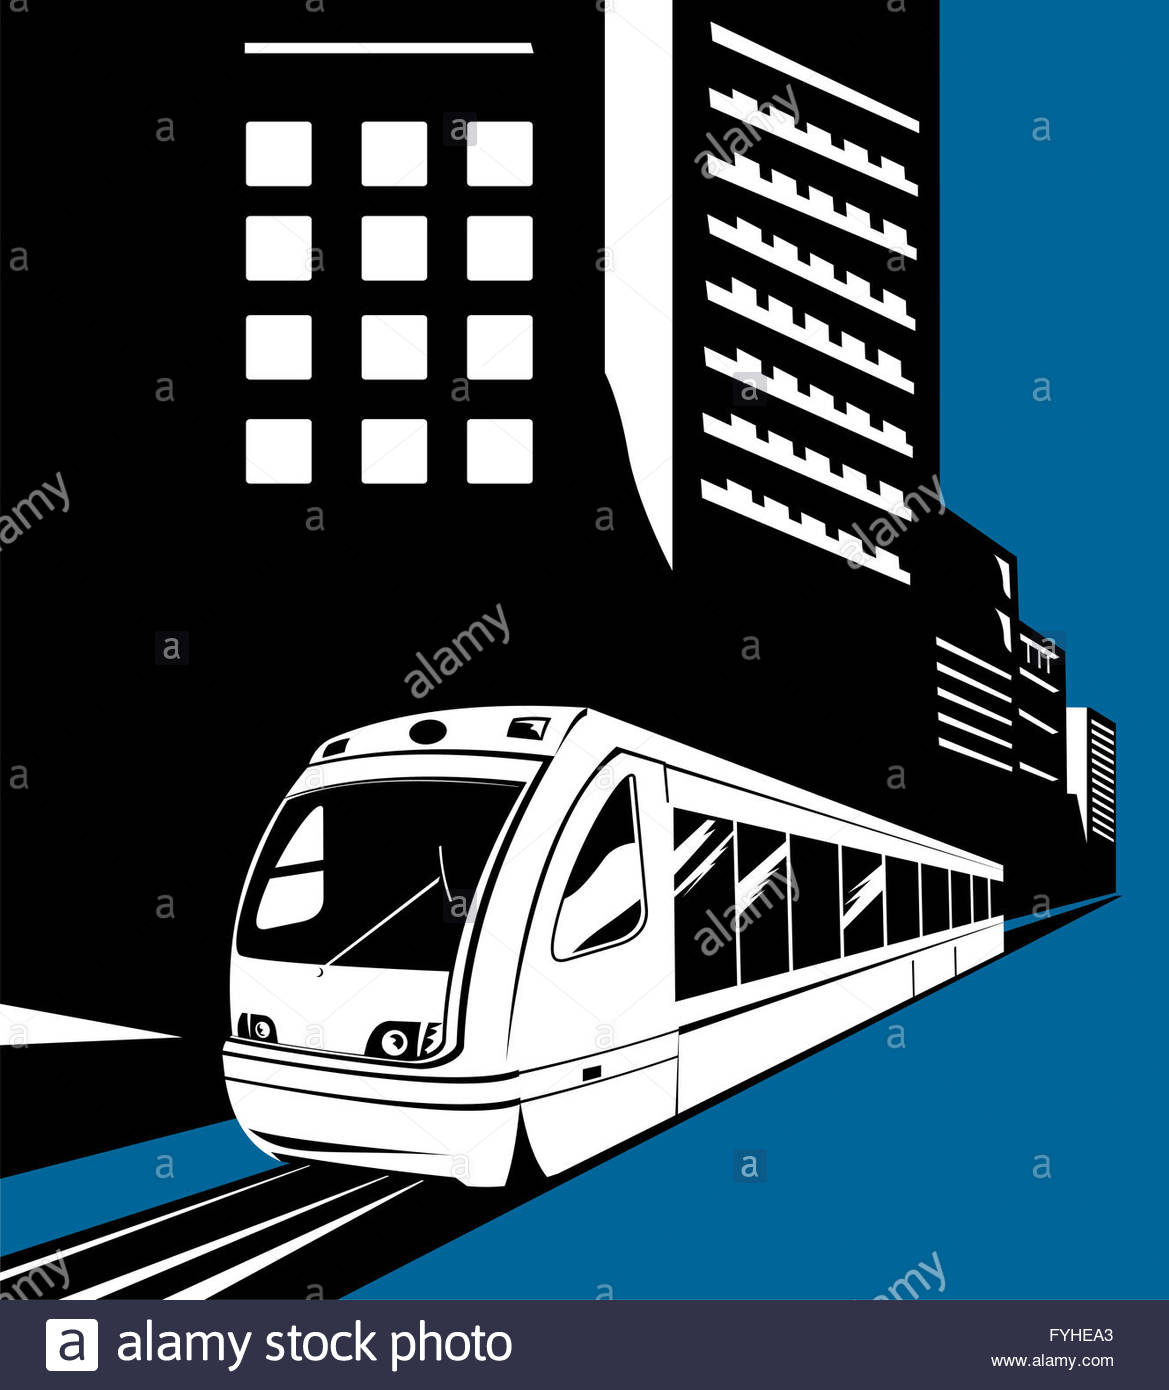 1169x1390 Electric Monorail Passenger Train Stock Photo, Royalty Free Image